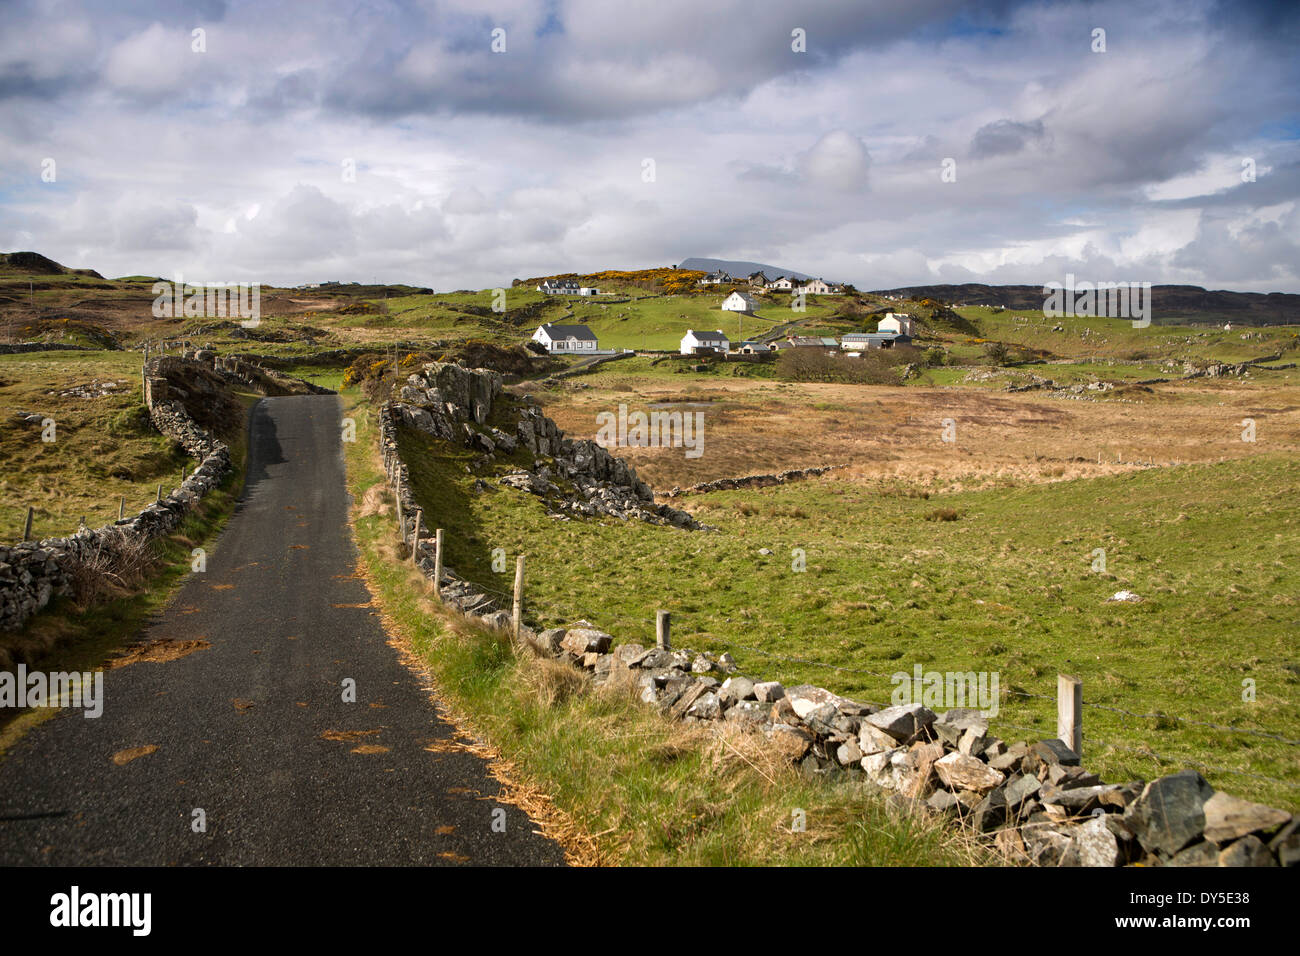 Ireland, Co Donegal, Marble Hill, road to Dunfanaghy - Stock Image